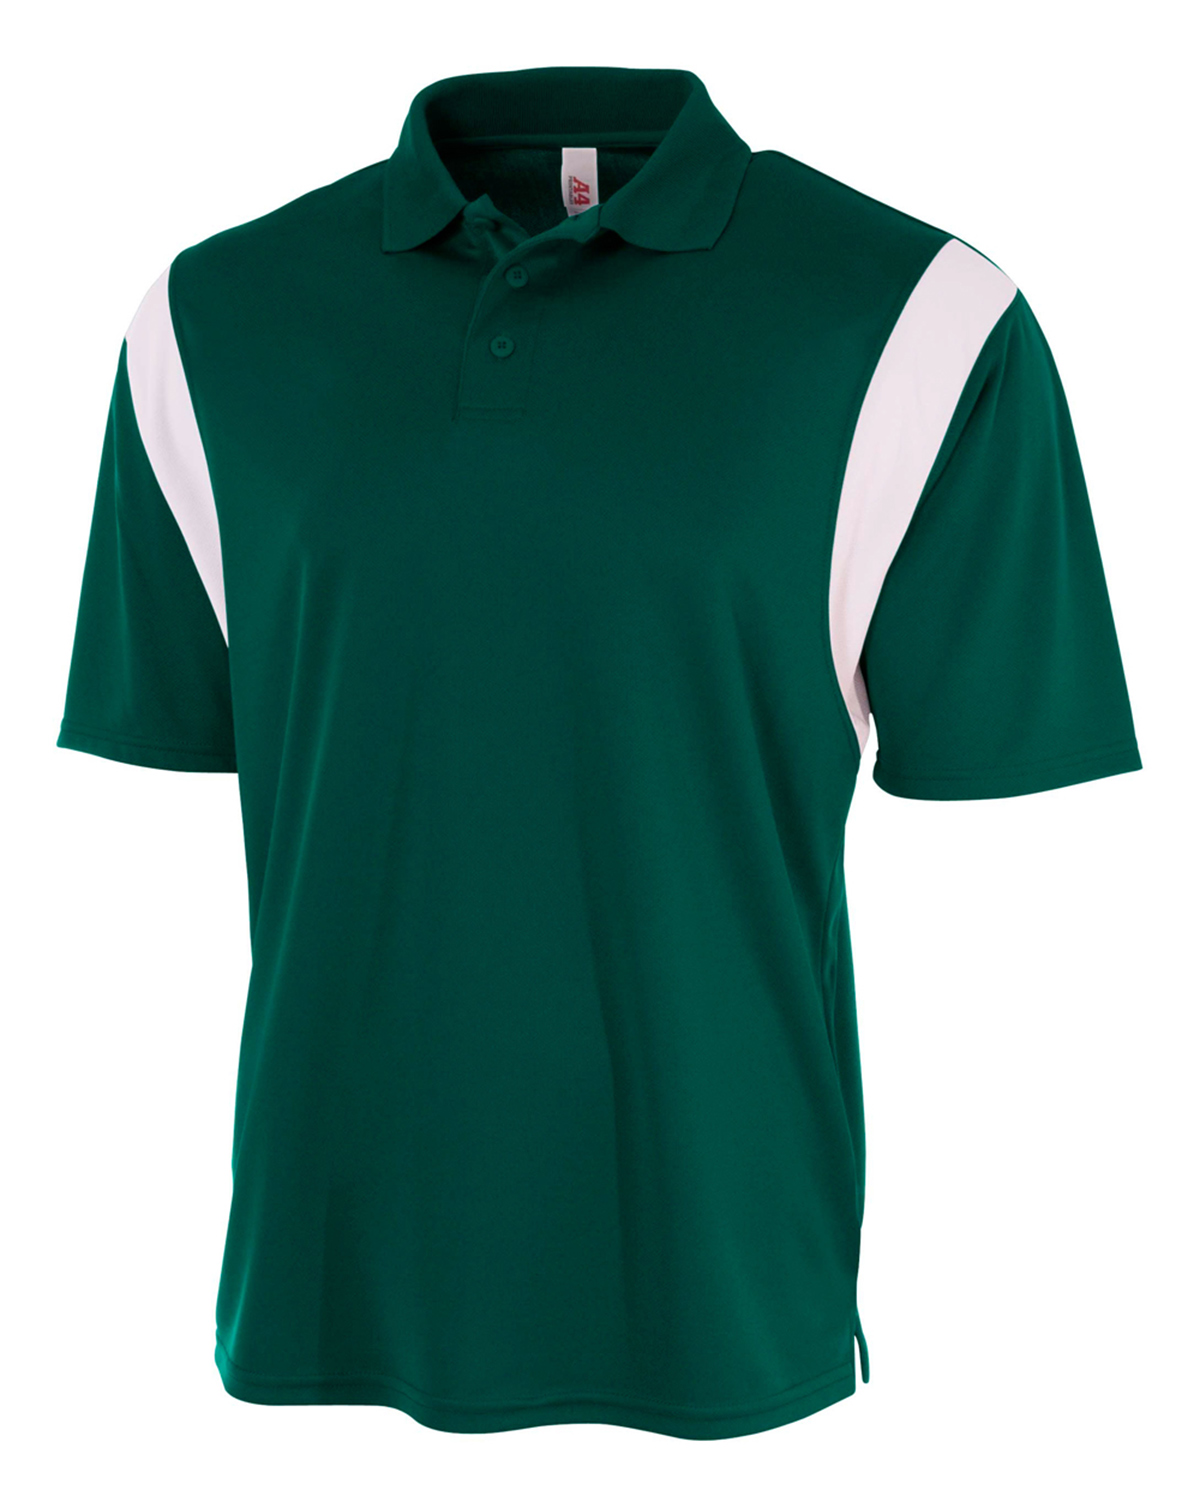 A4 Drop Ship N3266 - Men's Color Blocked Polo Shirt ...